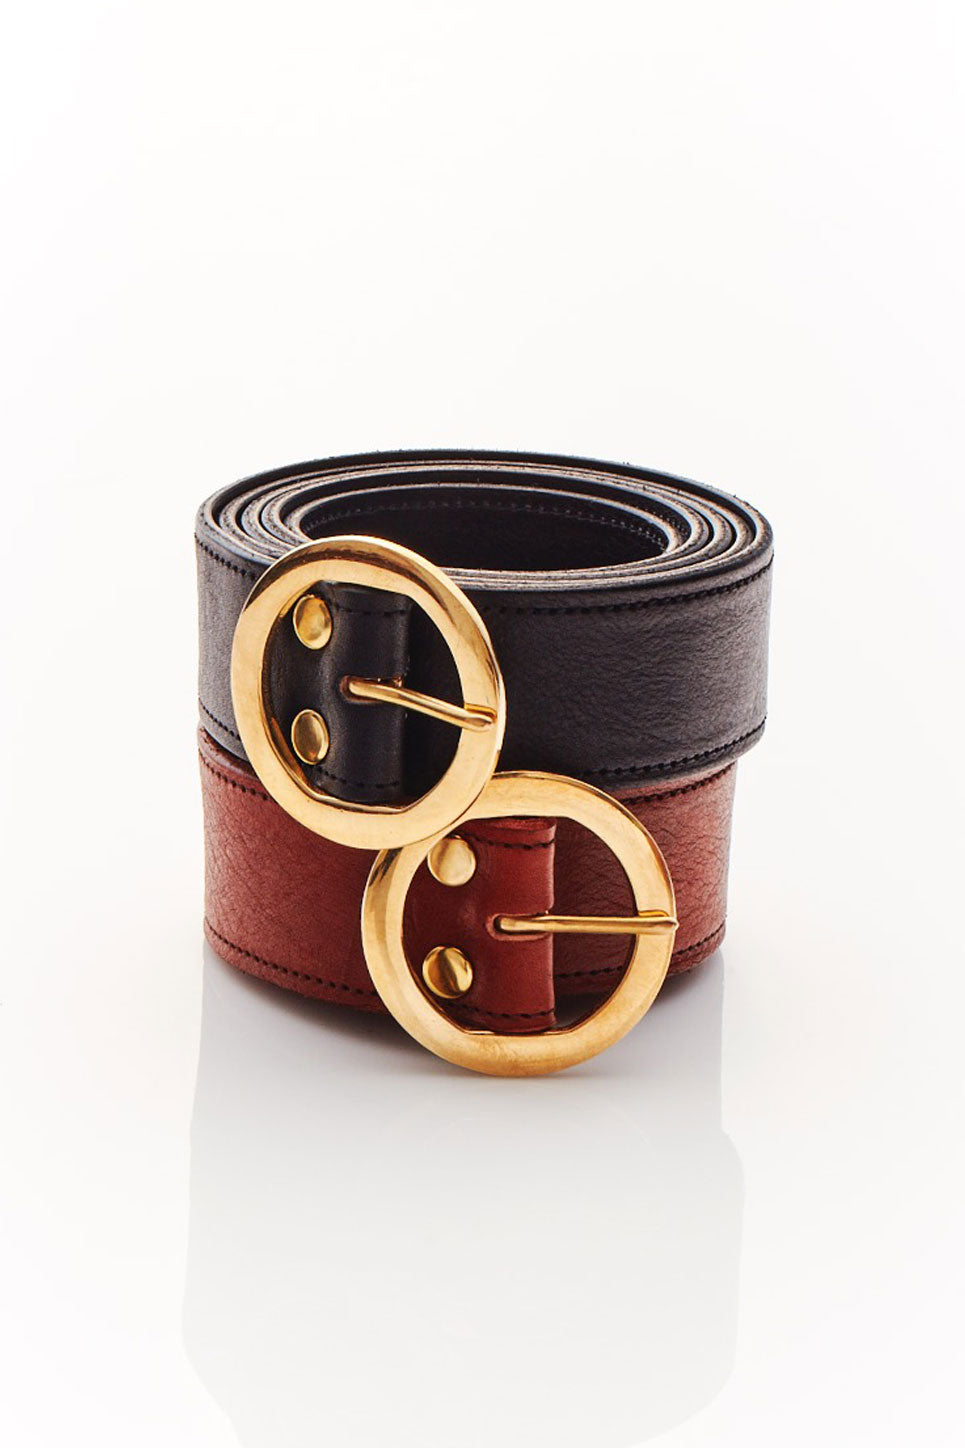 The Keller Belt in Black